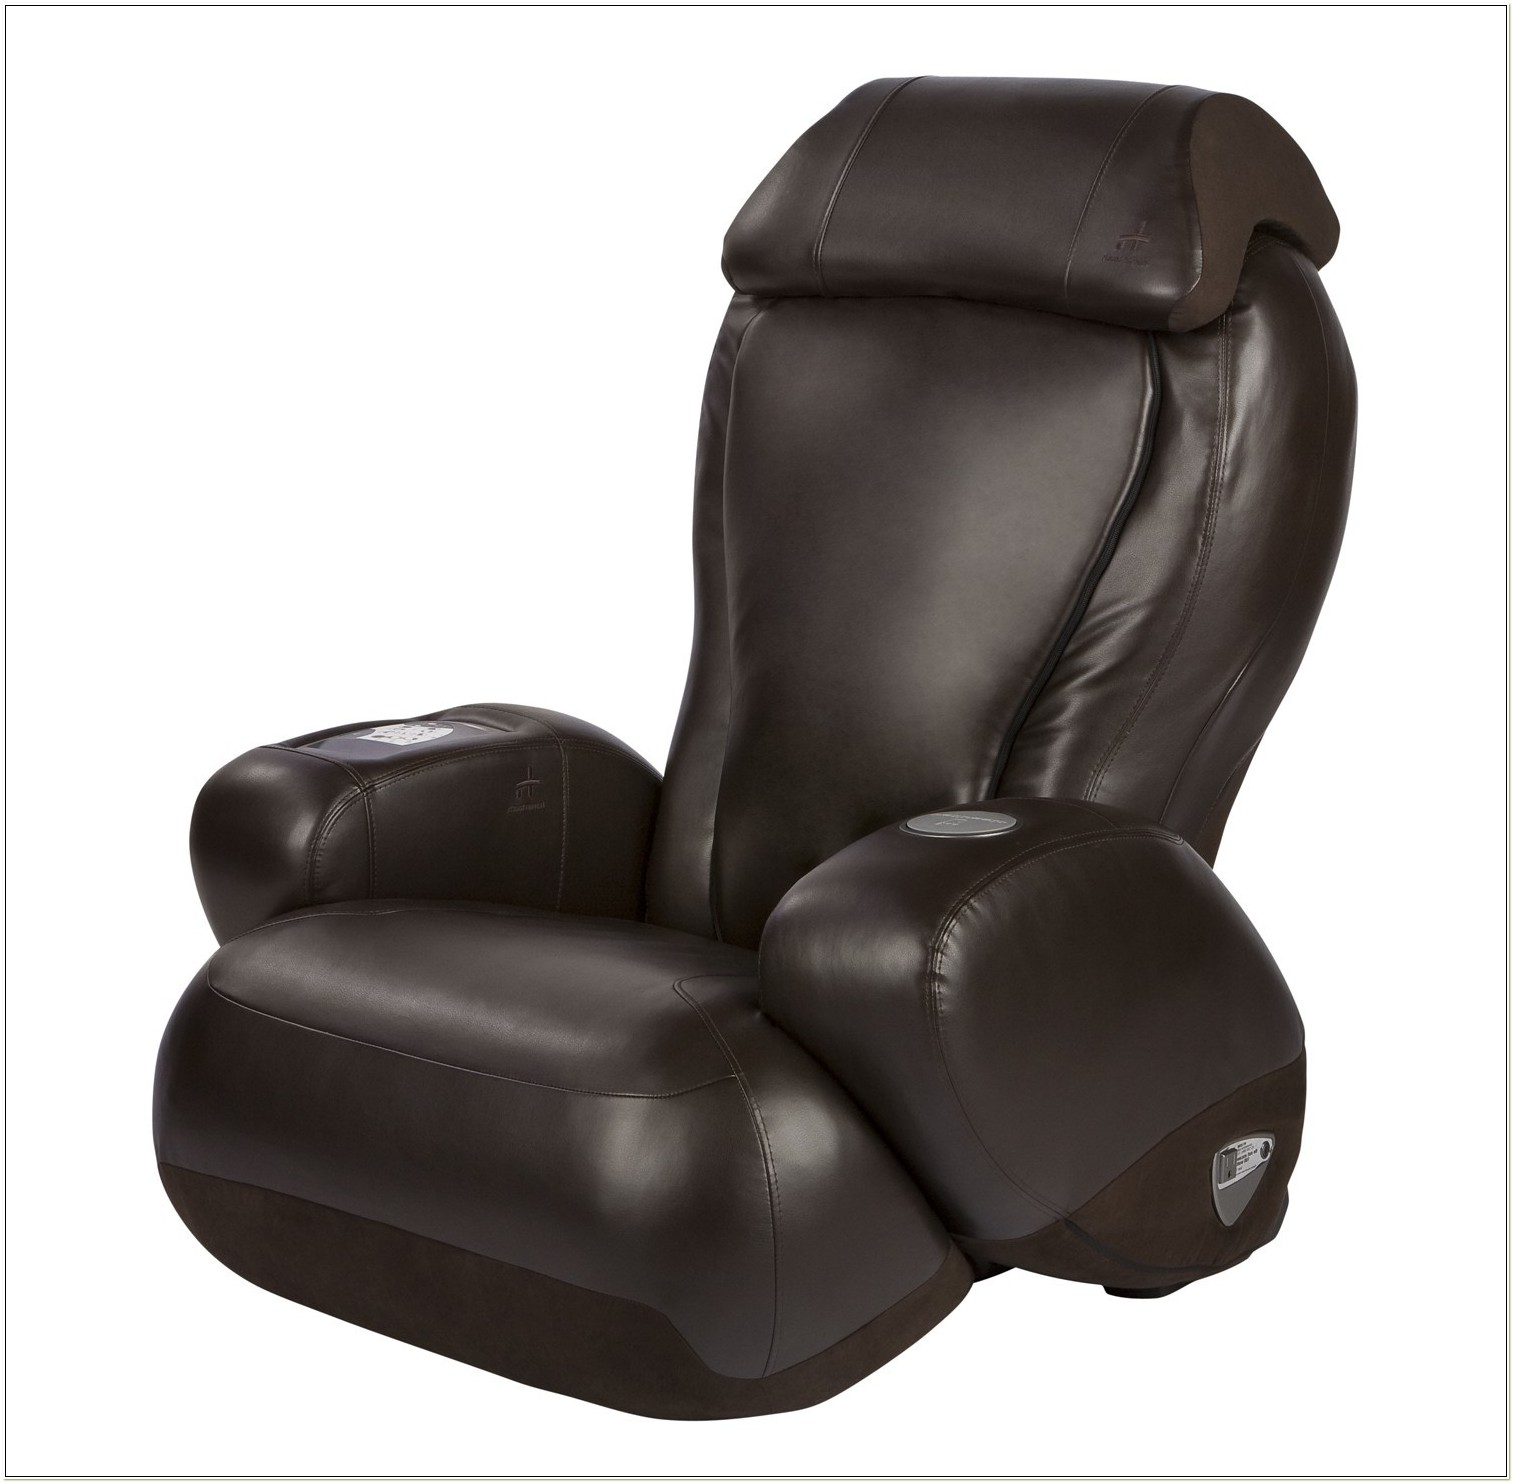 Ijoy 250 Human Touch Massage Chair